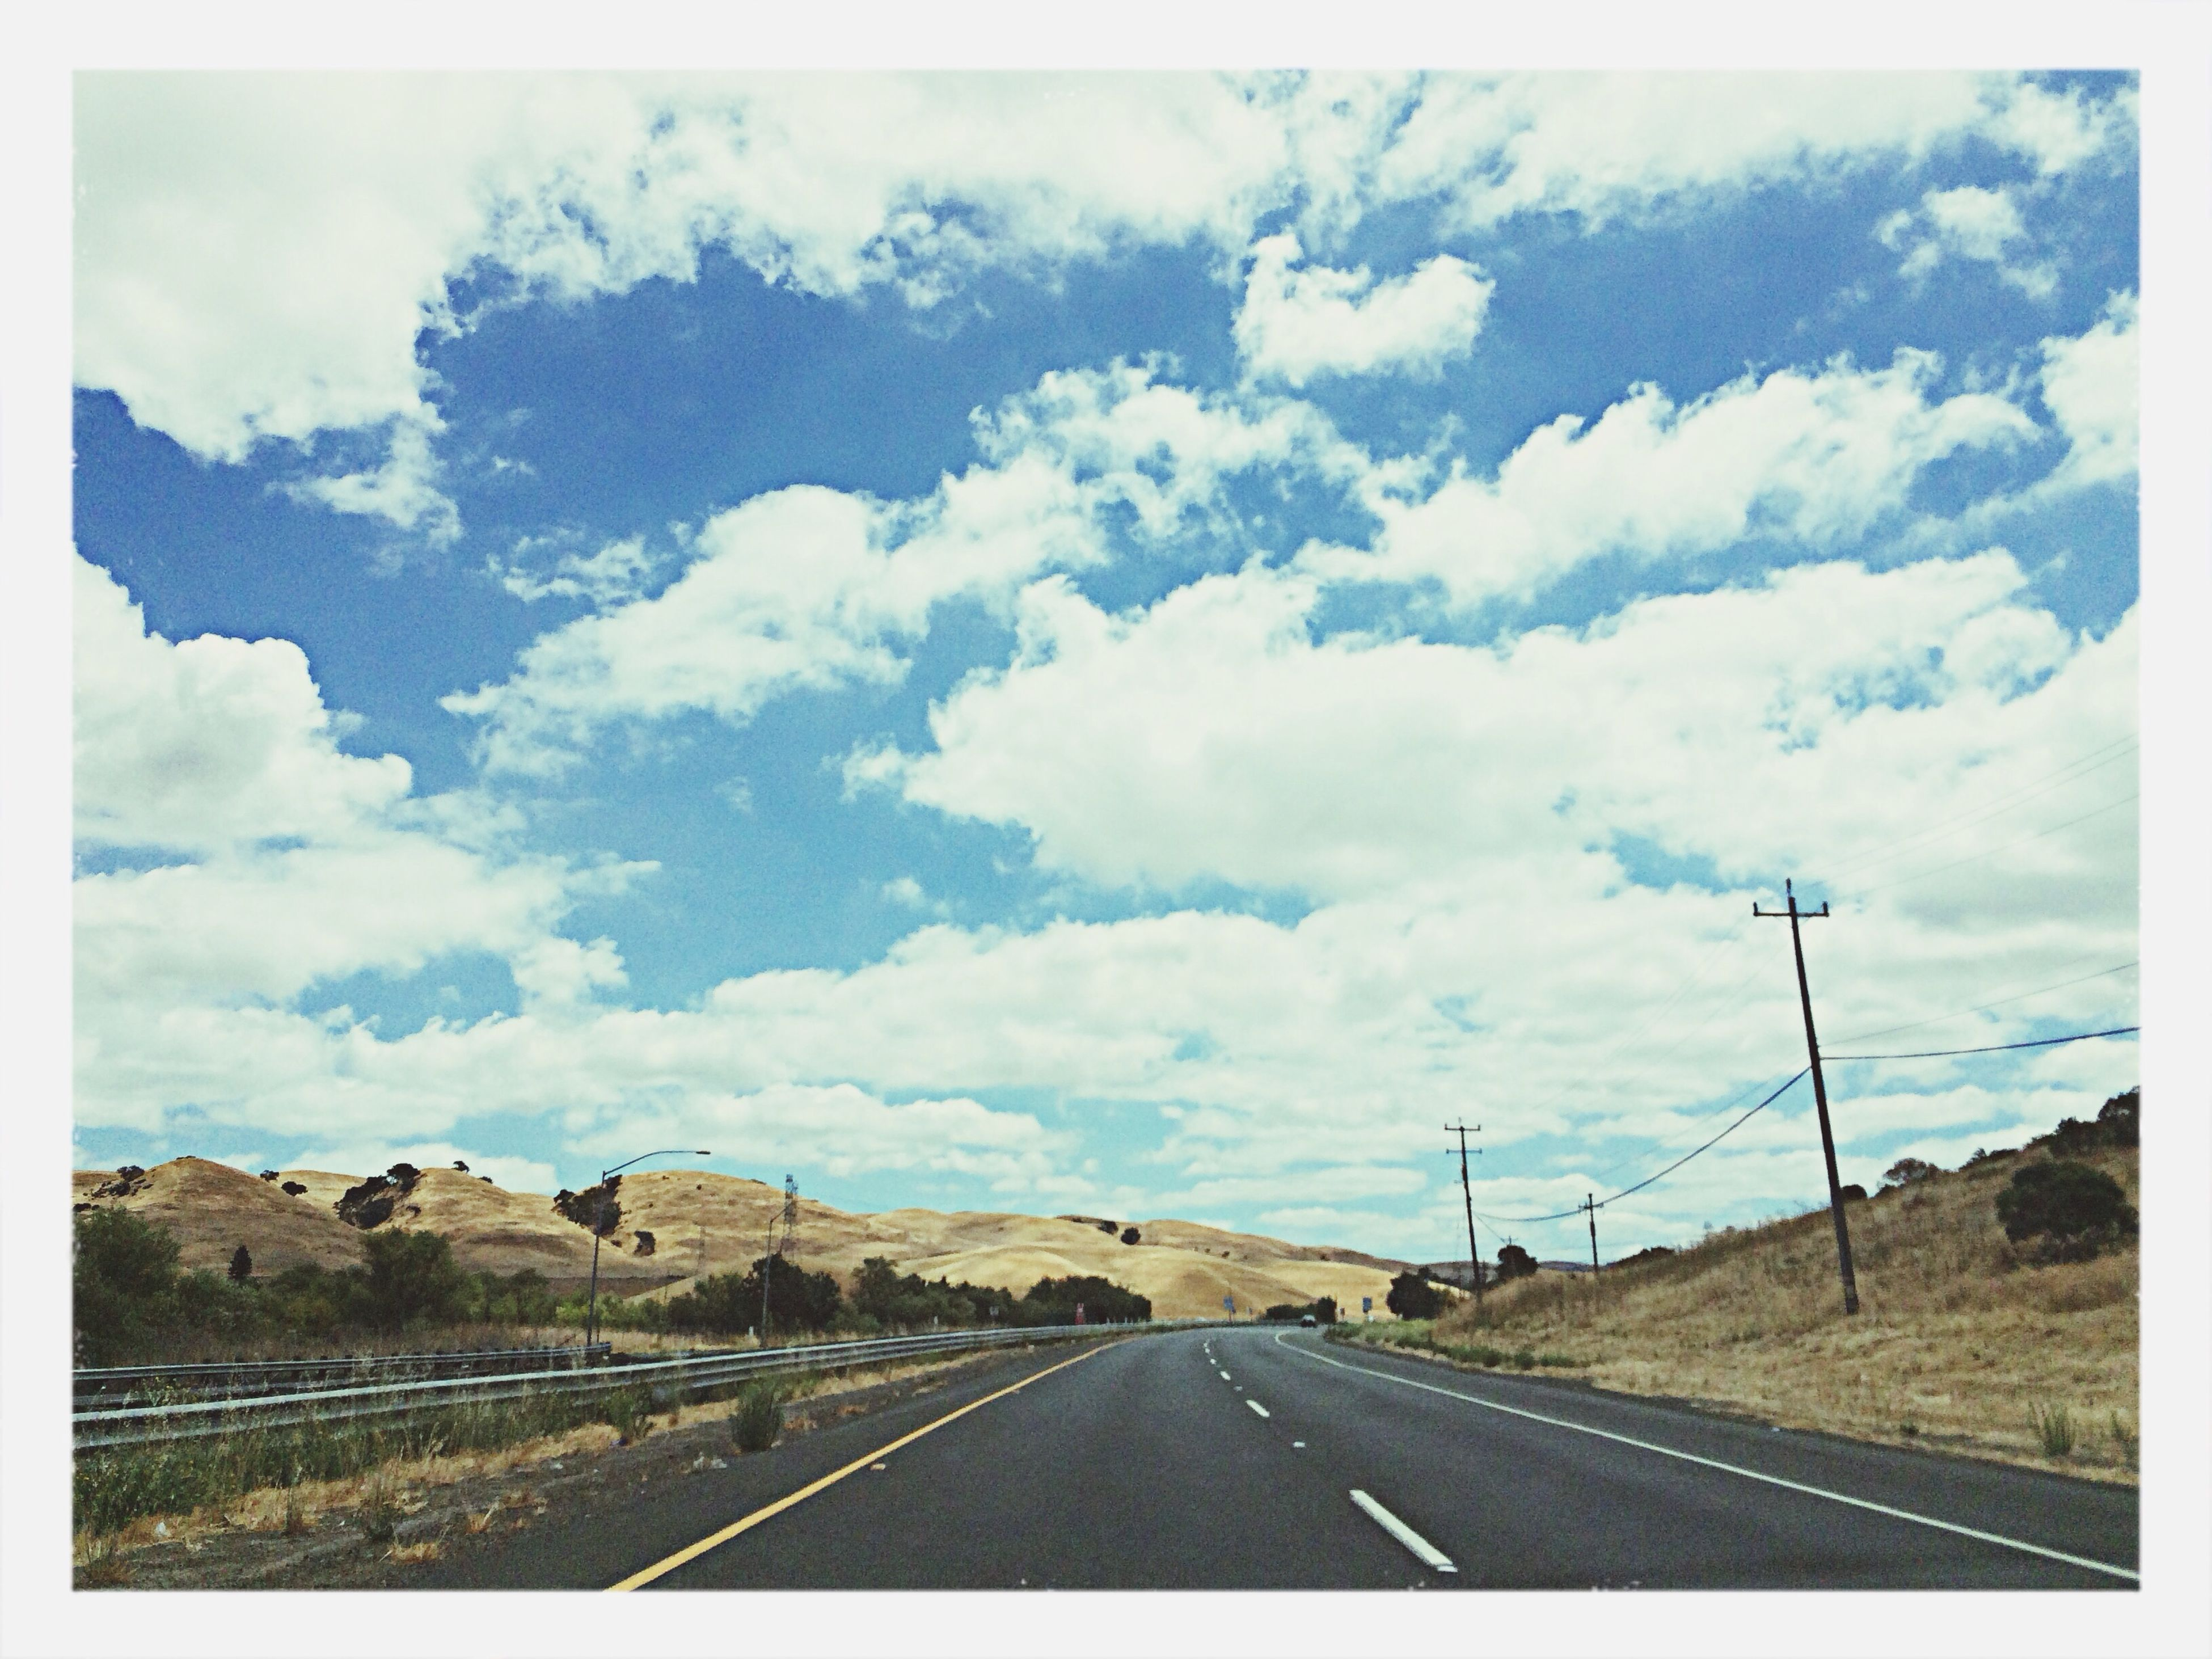 transportation, road, the way forward, sky, road marking, diminishing perspective, vanishing point, cloud - sky, transfer print, cloudy, cloud, country road, highway, landscape, auto post production filter, empty, street, empty road, car, asphalt